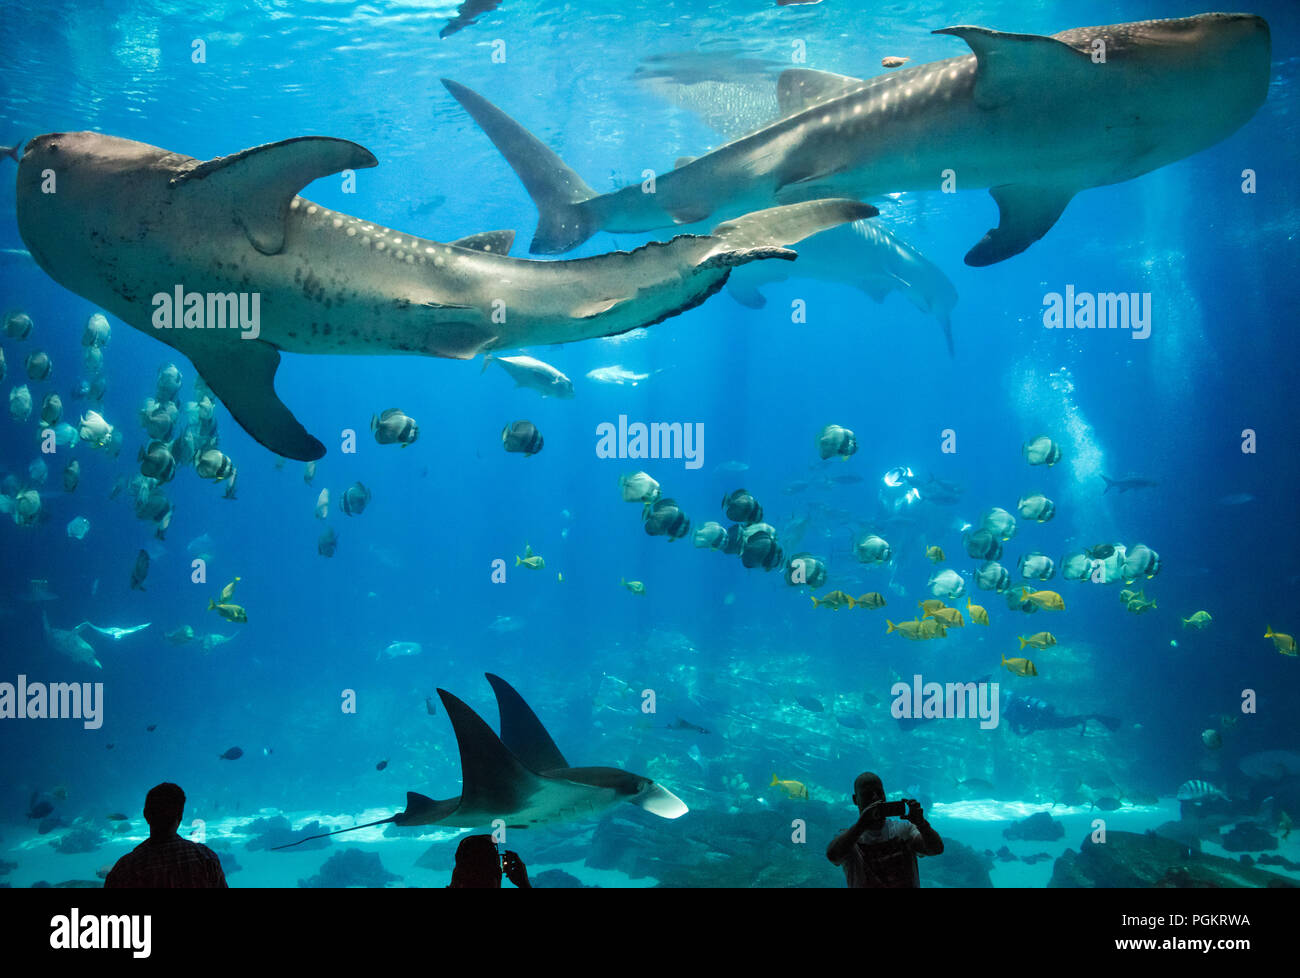 Atlanta's Georgia Aquarium gives visitors a breathtaking underwater view as massive whale sharks and a manta ray swim with two human divers. - Stock Image